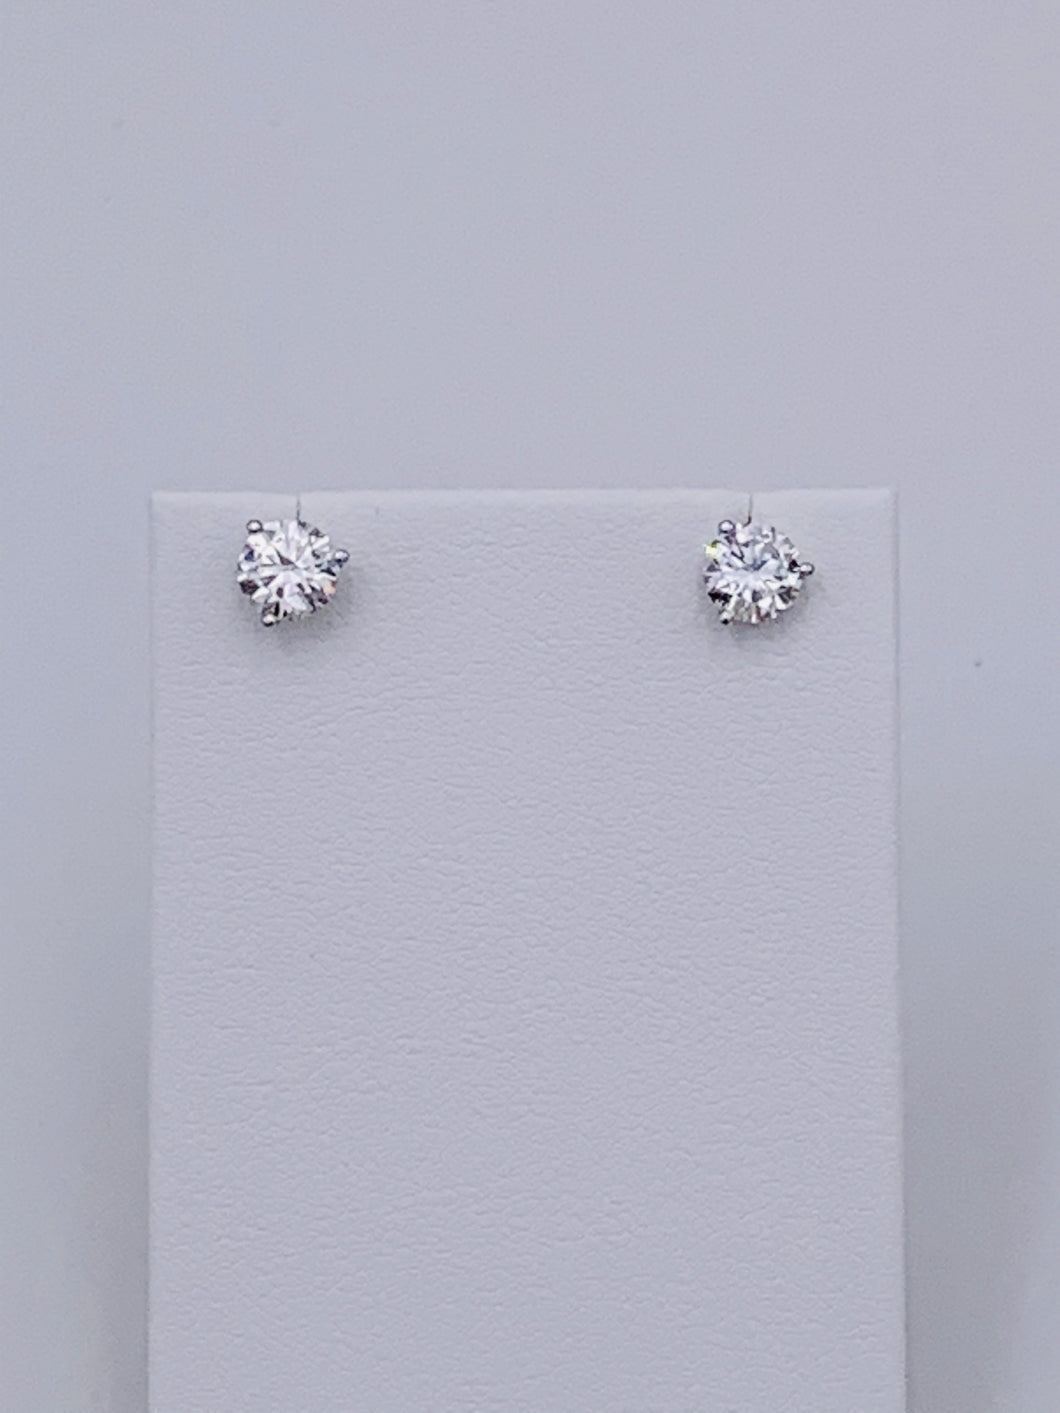 14 Karat White Gold Martini Style Round Brilliant Diamond Stud Earrings